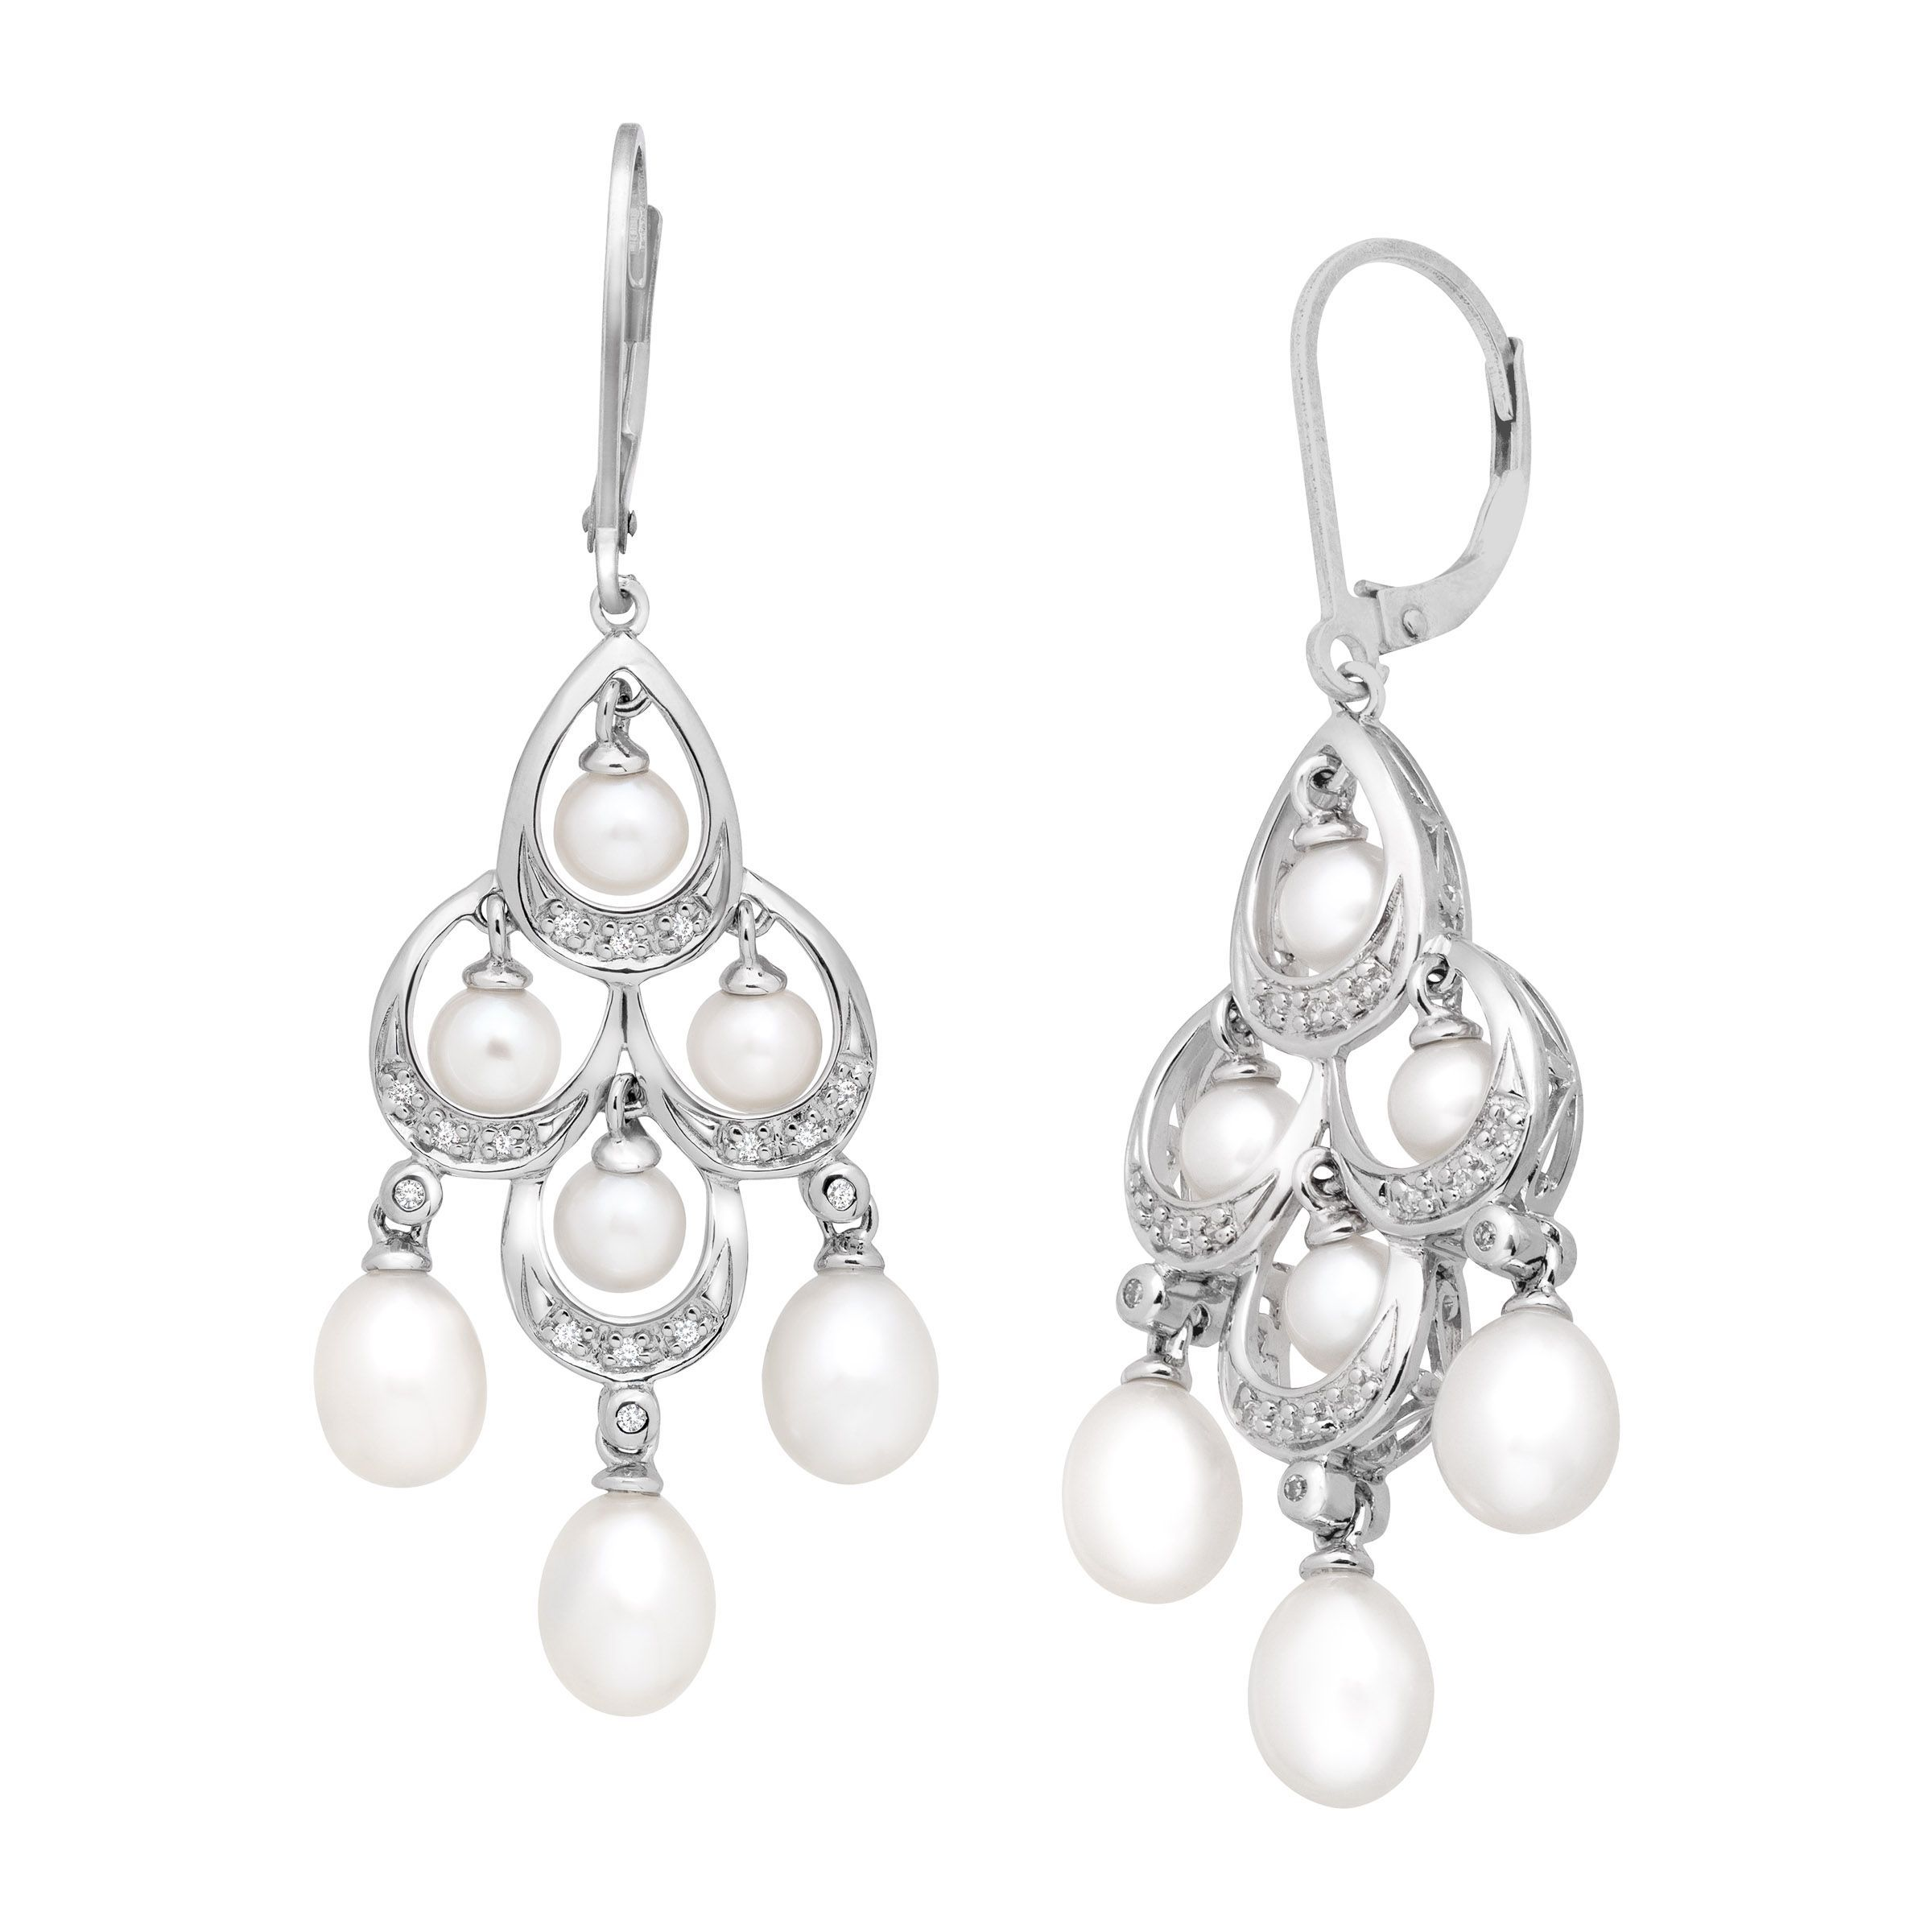 7bb7ec479b9 Details about Freshwater Pearl and 1 10 ct Diamond Chandelier Earrings in Sterling  Silver